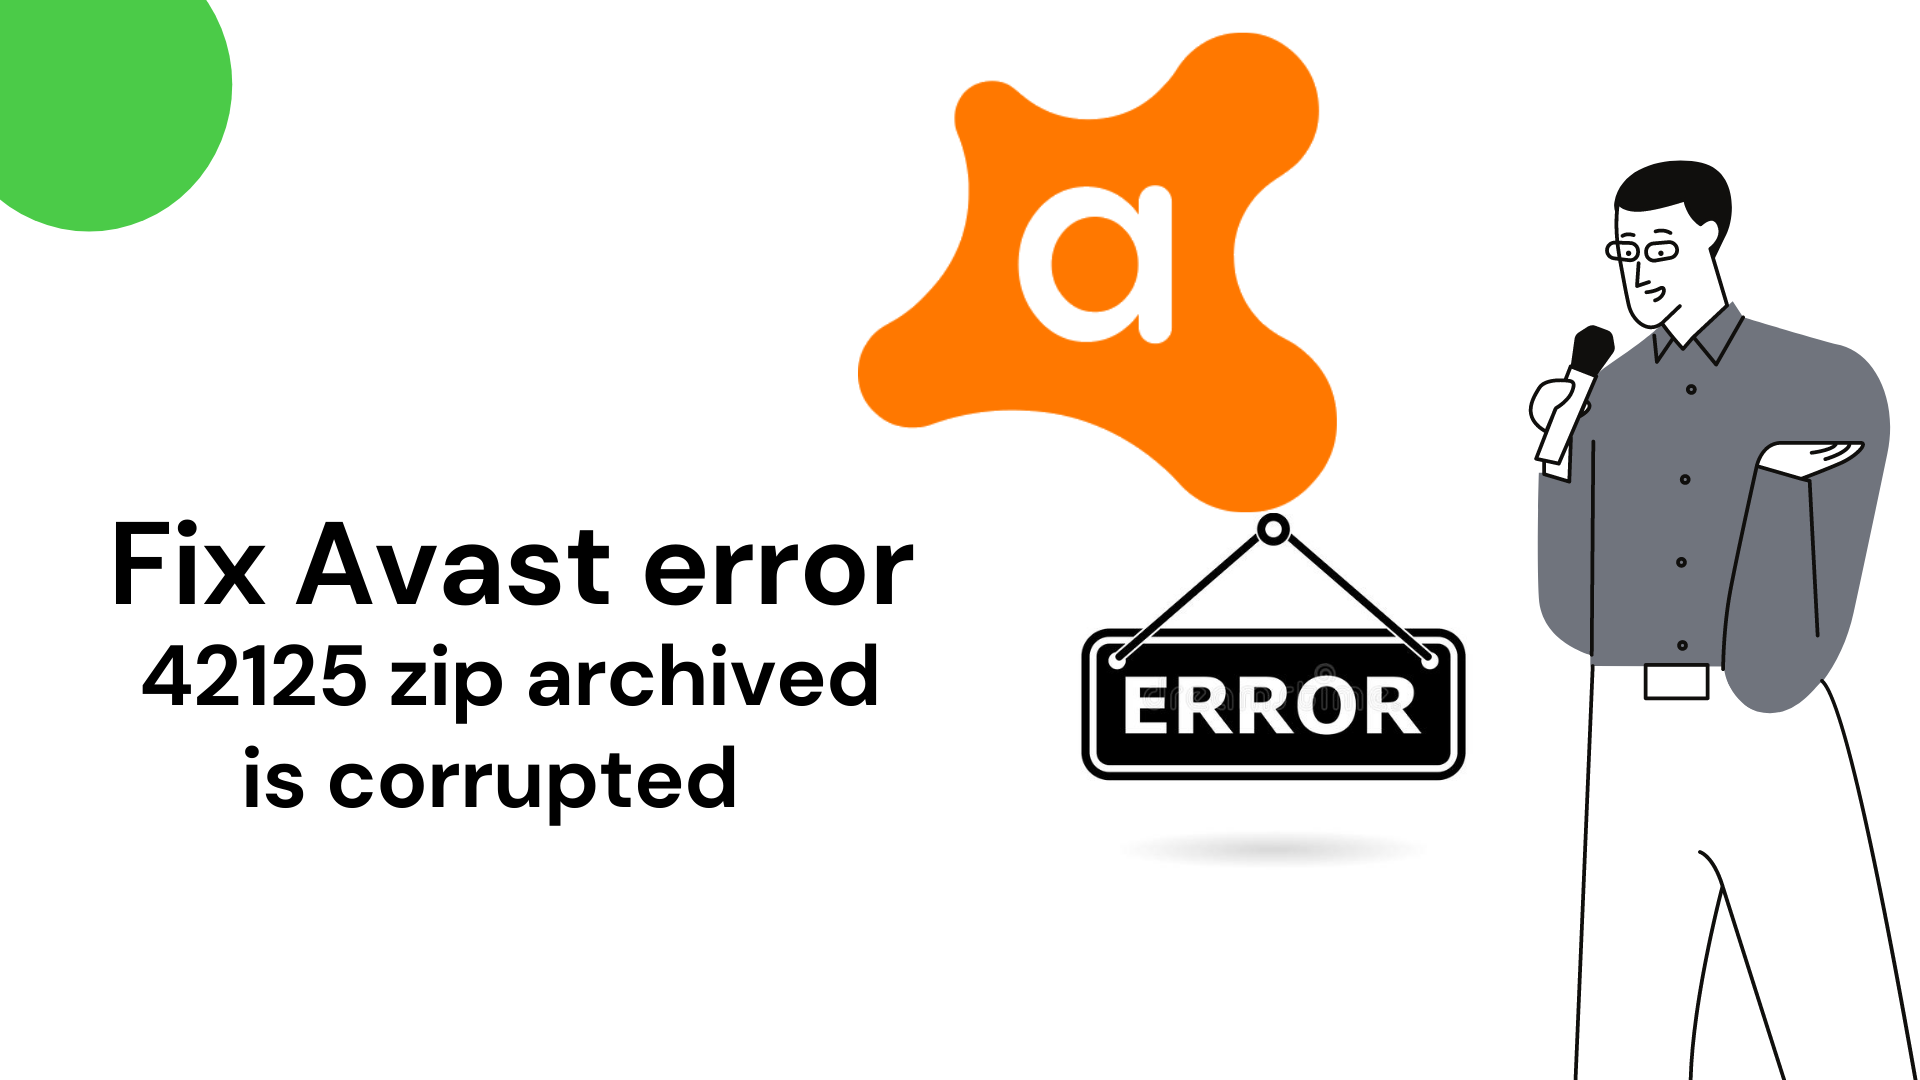 Fix Avast error 42125 zip archived is corrupted